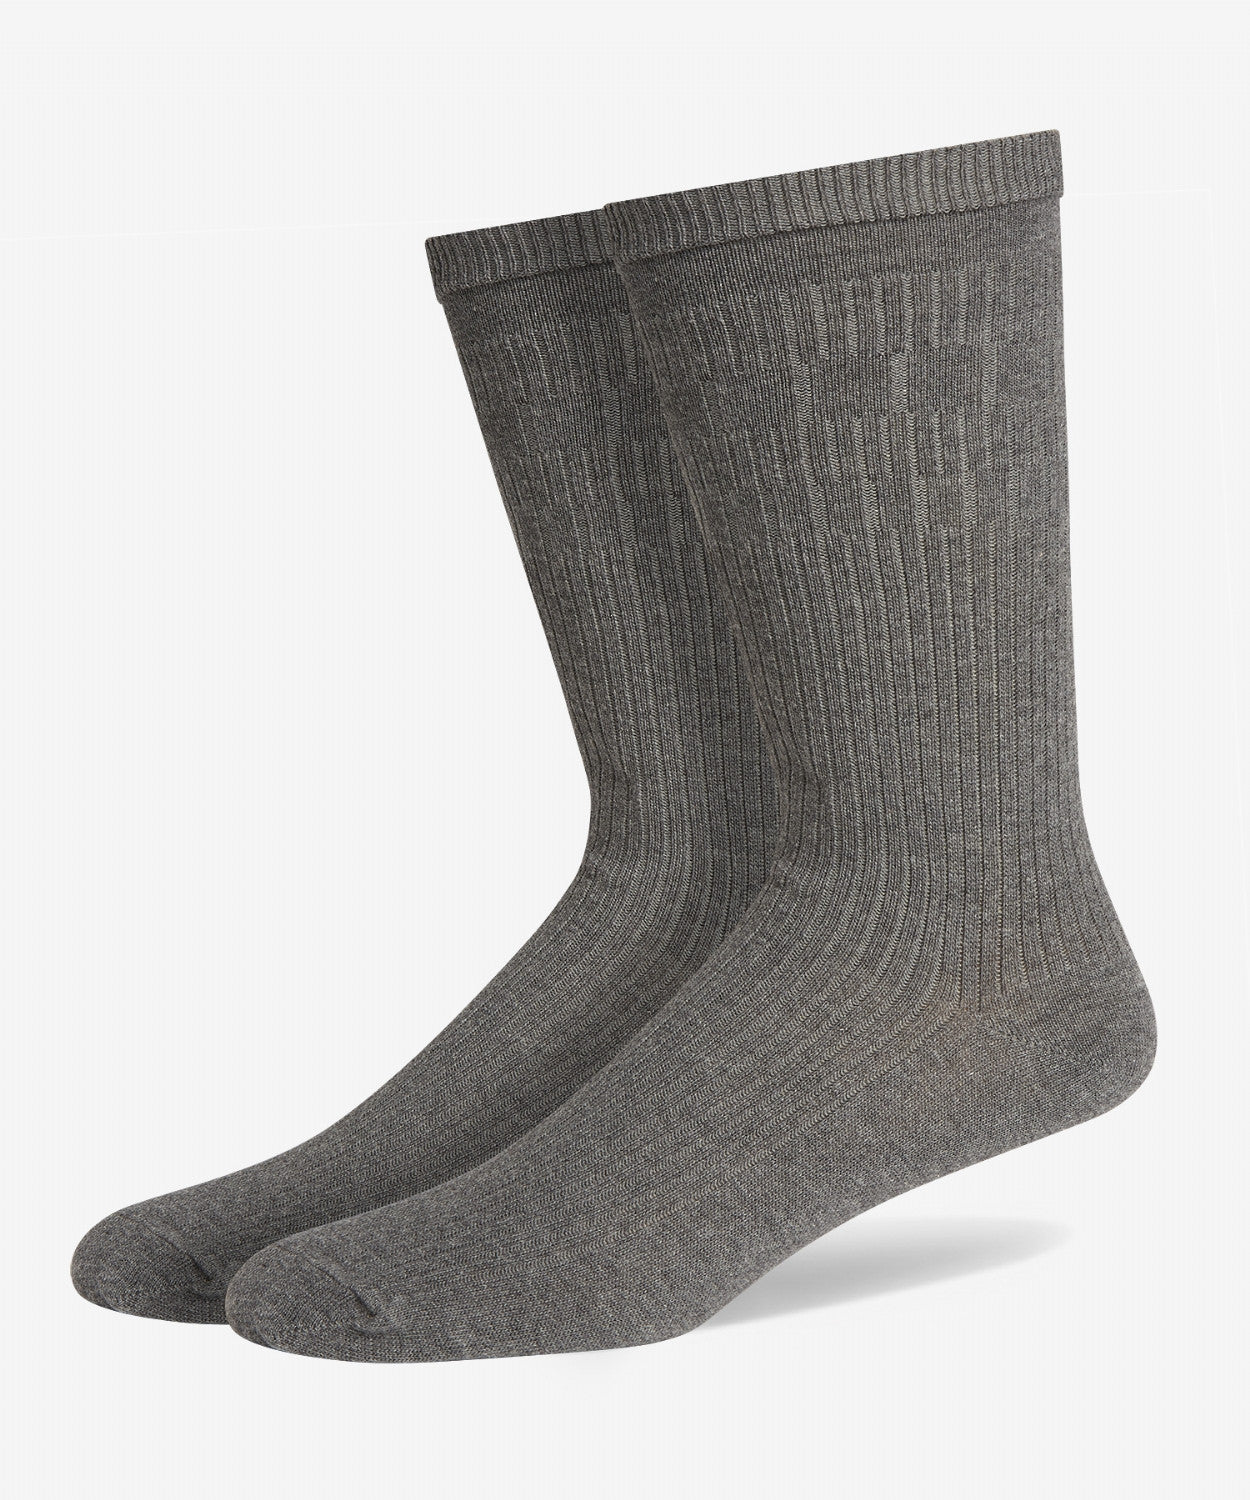 GREY SOFT GRIP COTTON SOCKS